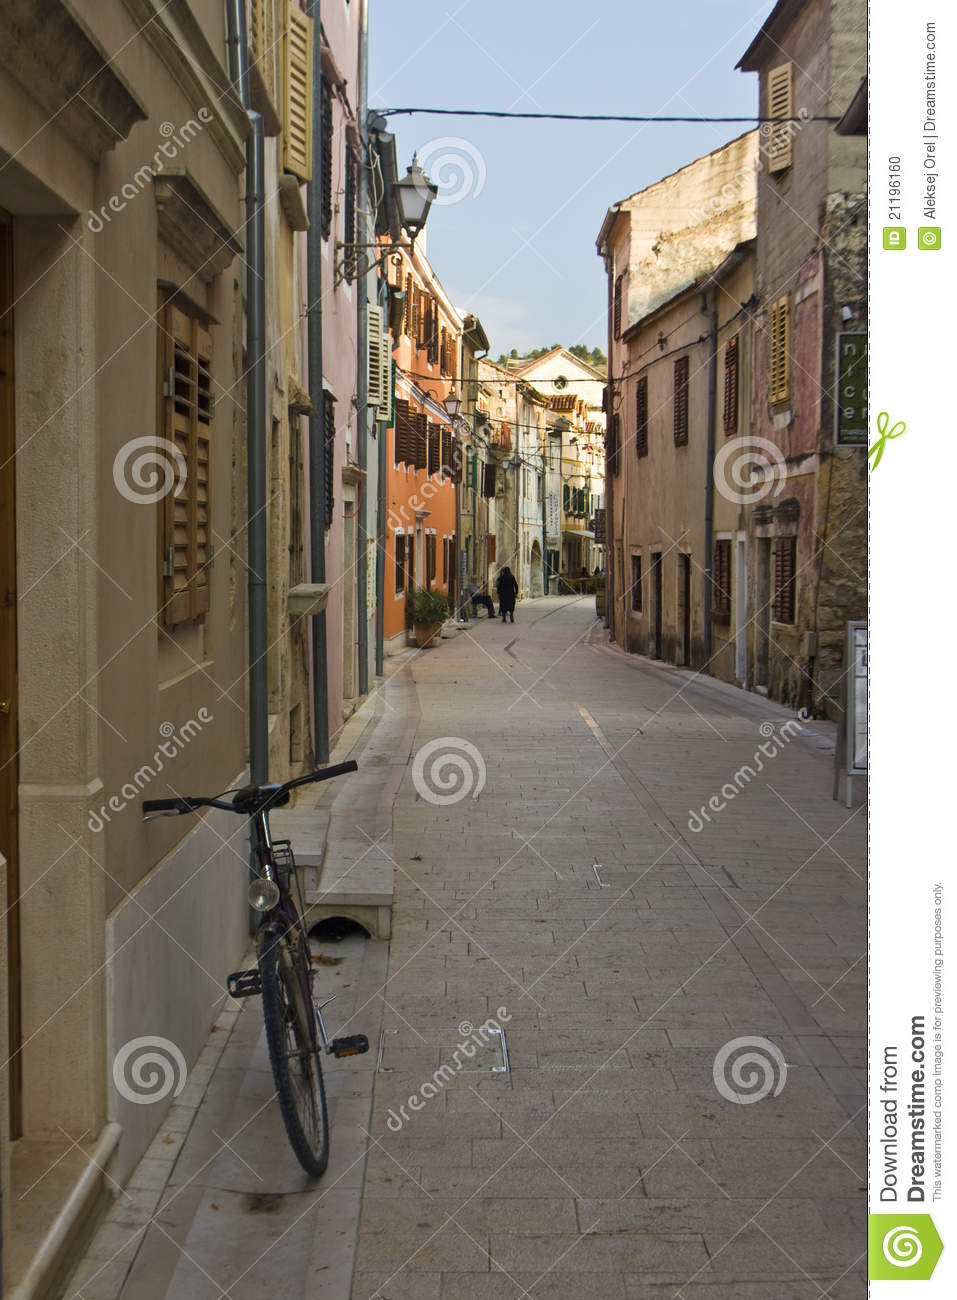 A bicycle in the stone-paved street in Skradin